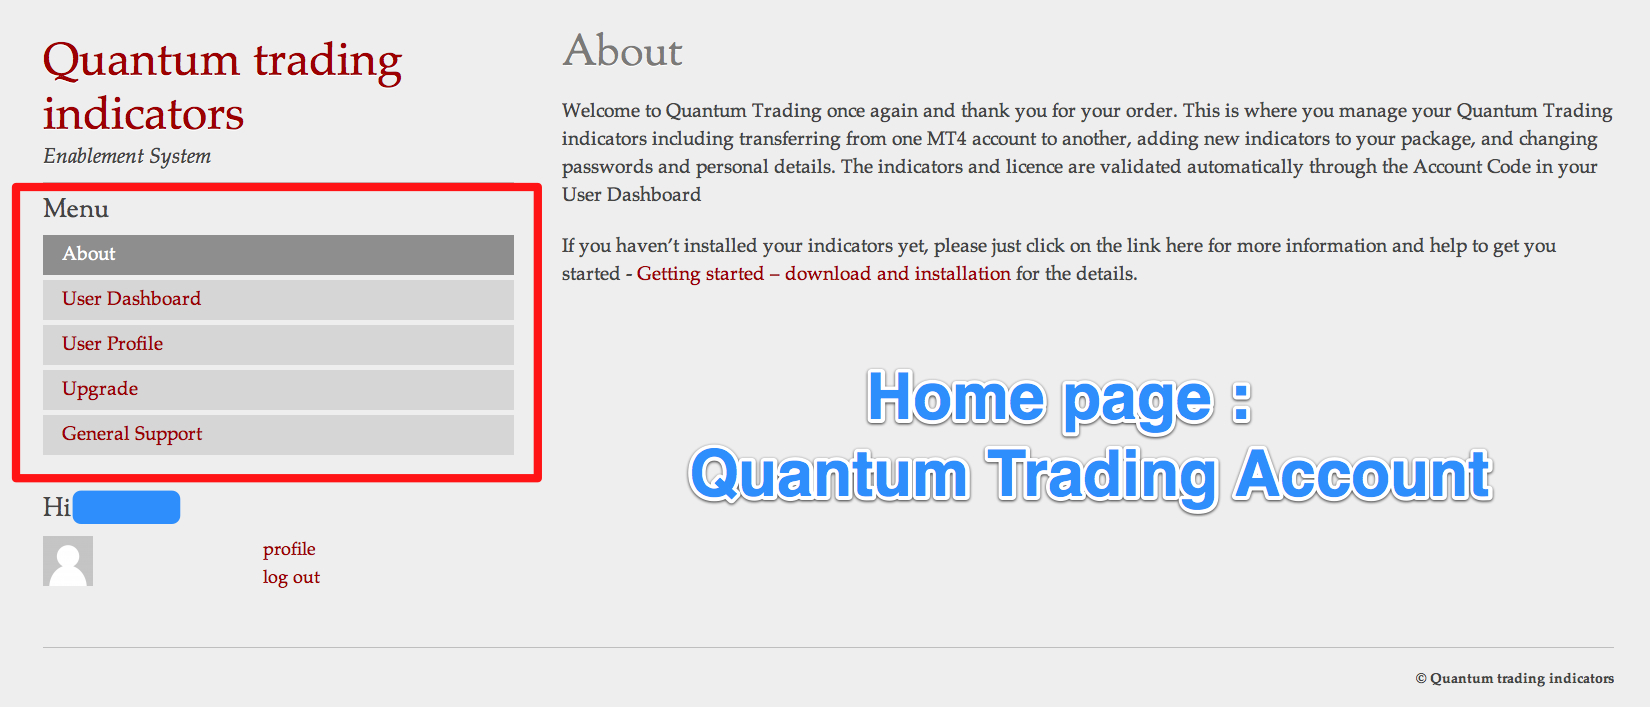 HOME PAGE - Quantum